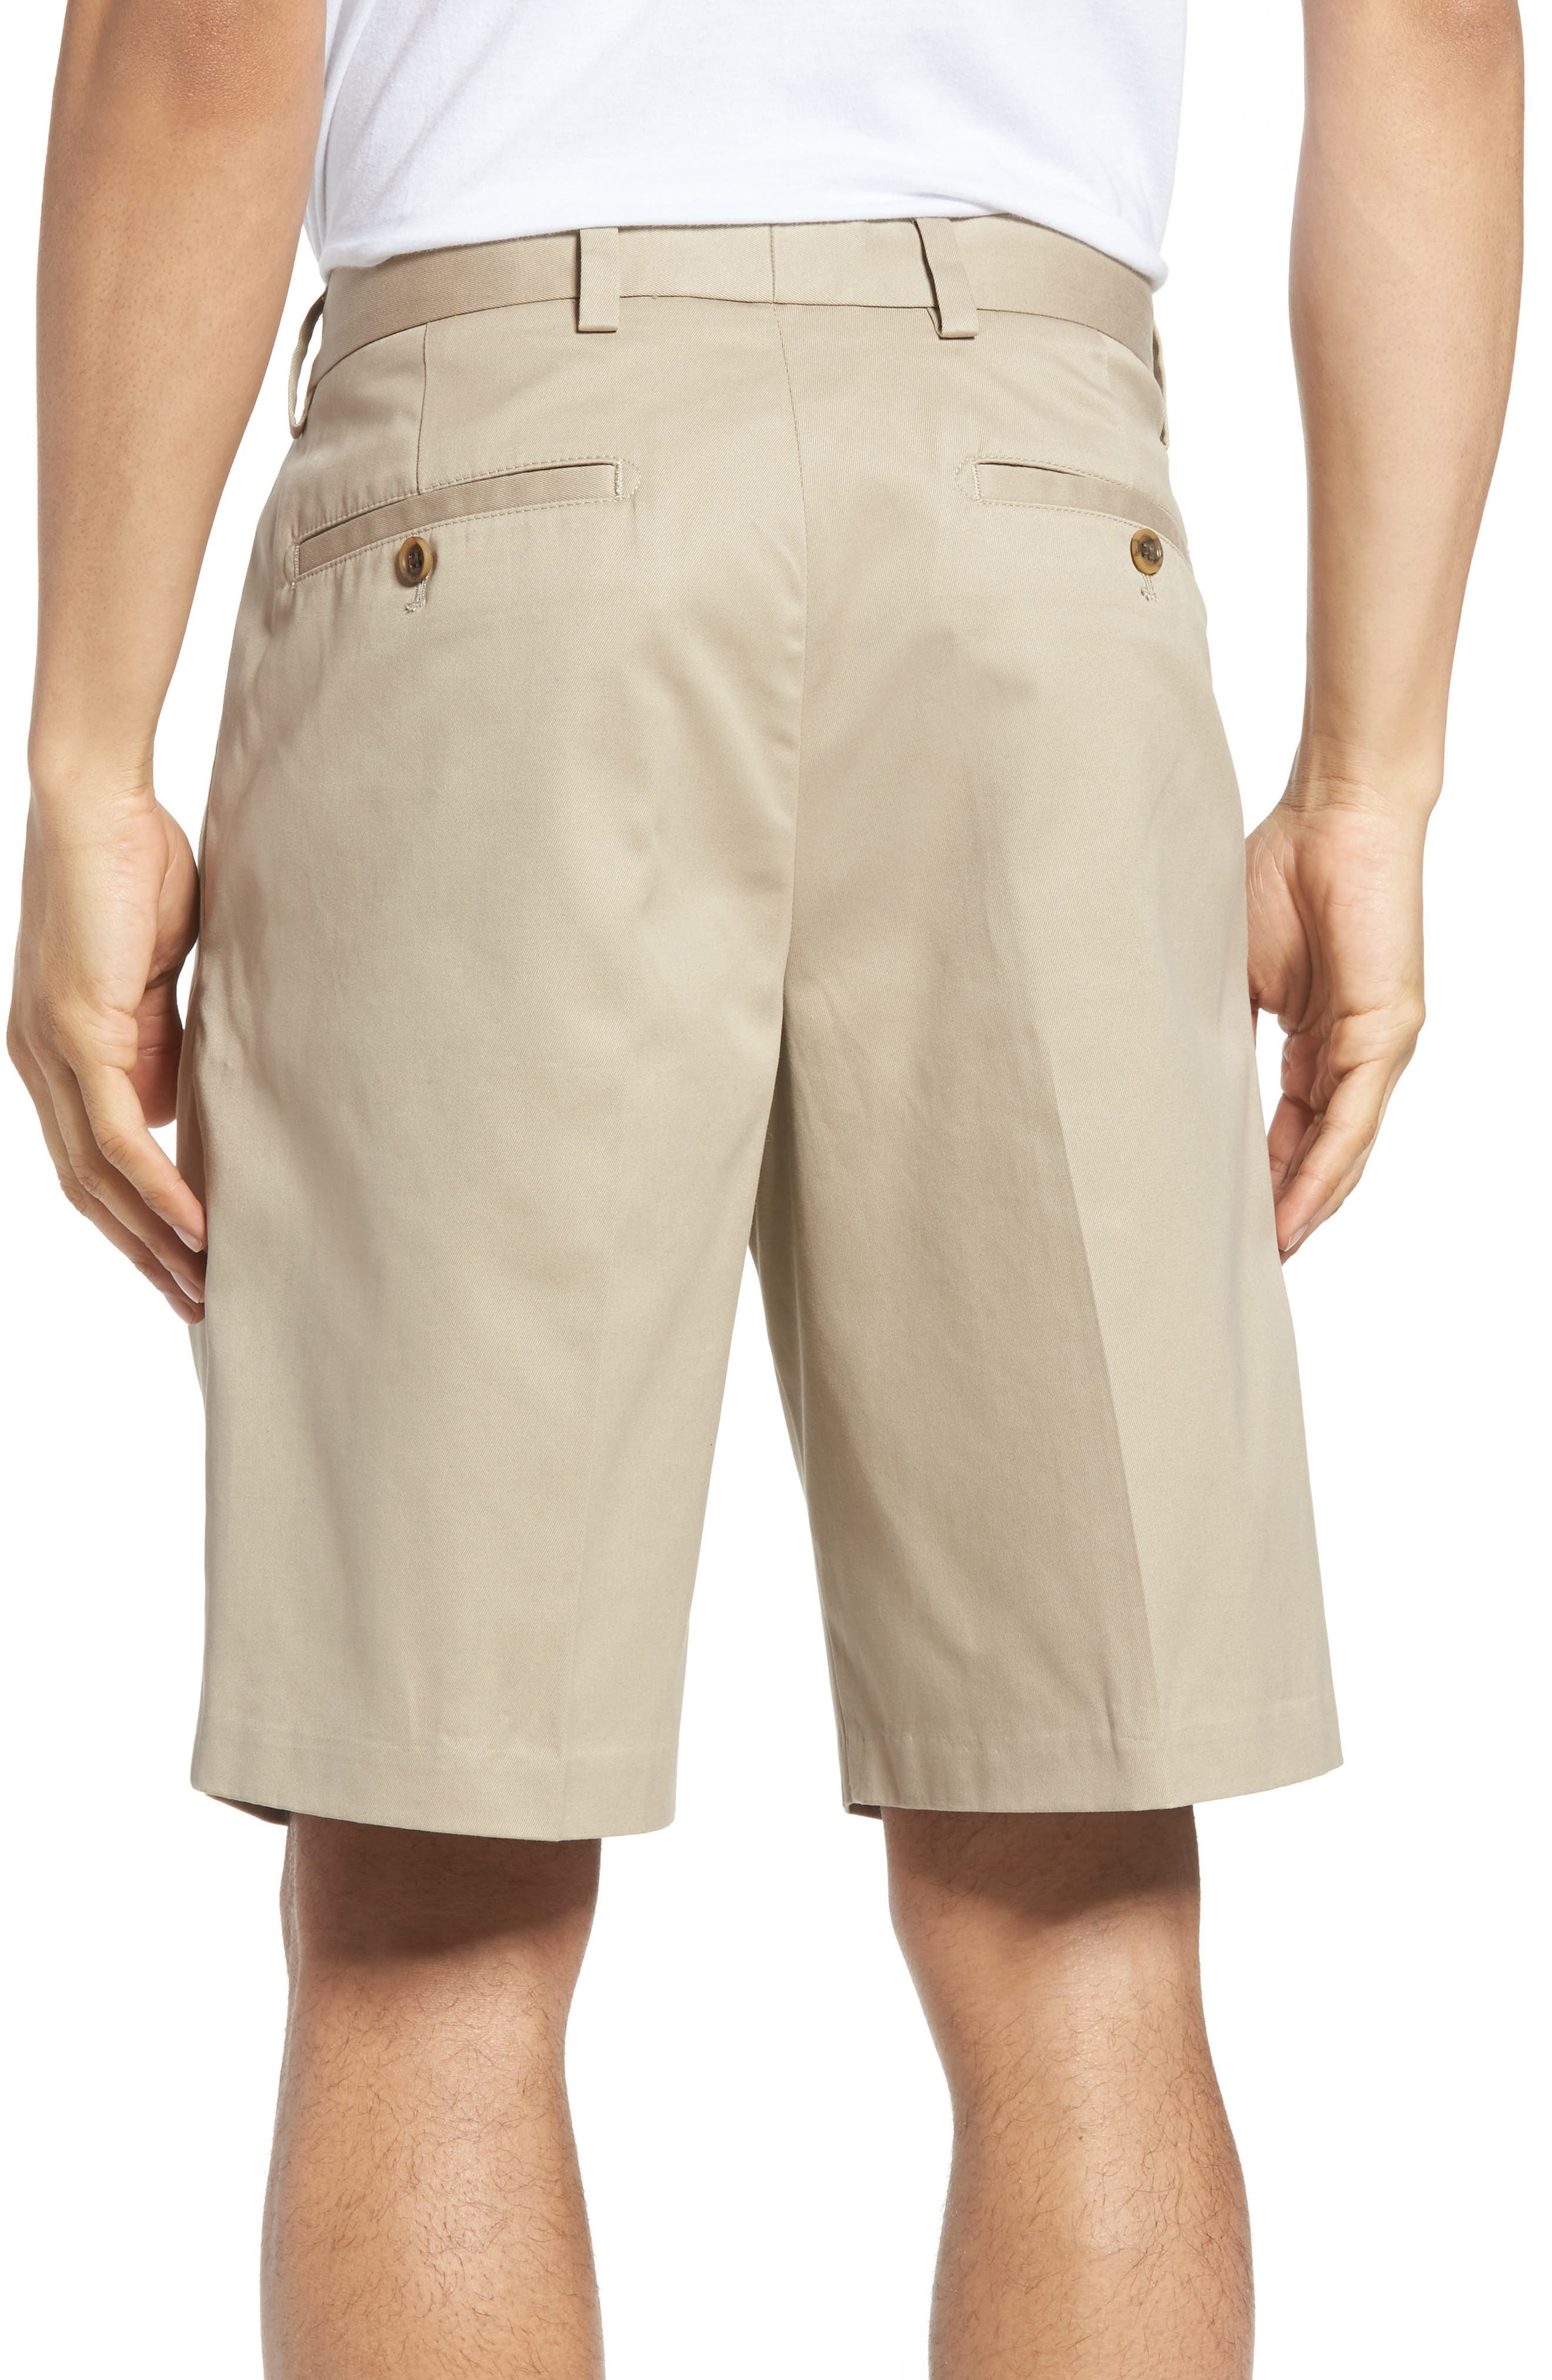 Smartcare<sup>™</sup> Pleated Shorts,                             Alternate thumbnail 2, color,                             Tan